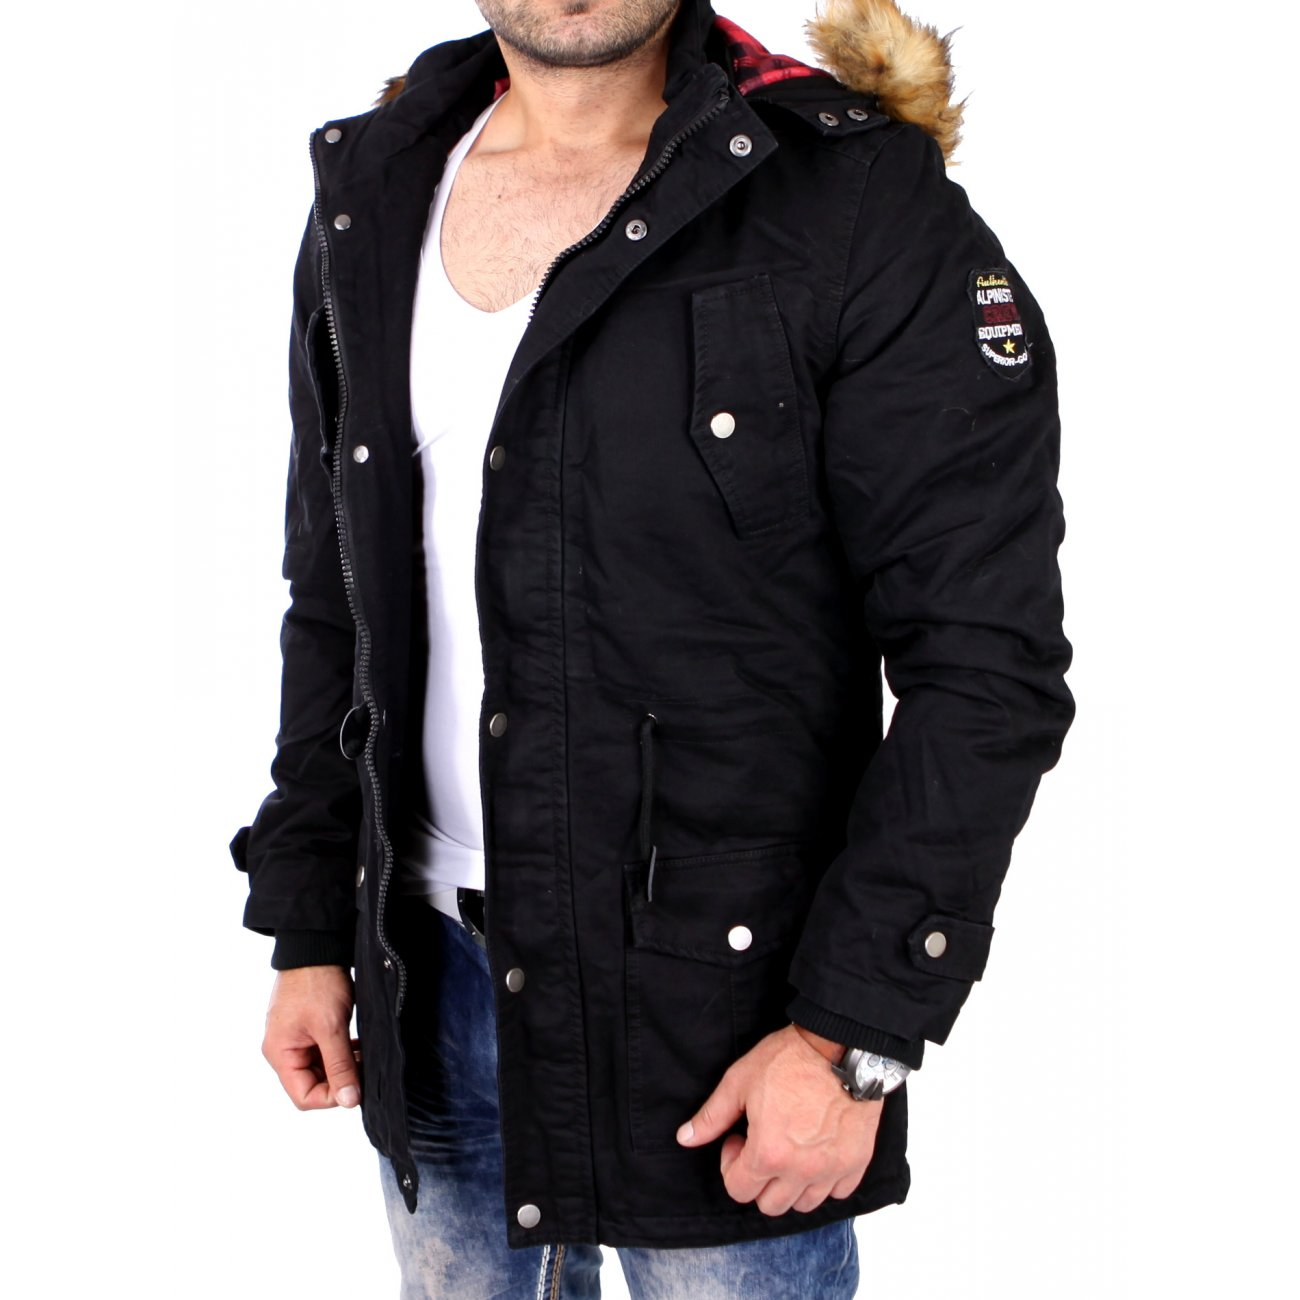 reslad winterjacke herren parka jacke mit kapuze und fell rs 505. Black Bedroom Furniture Sets. Home Design Ideas